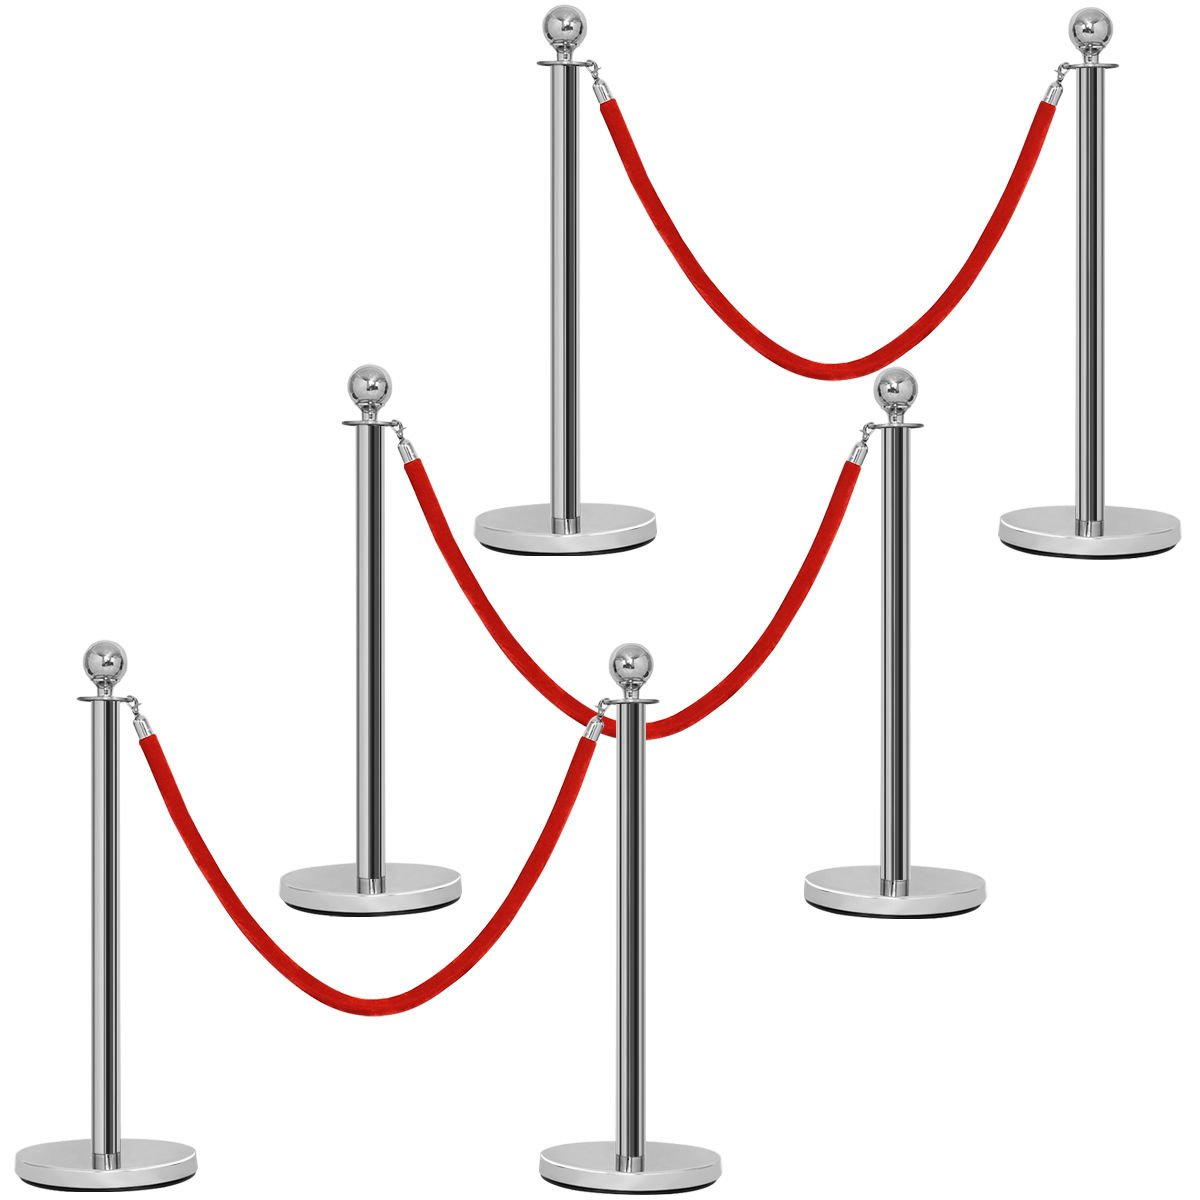 Goplus 6Pcs Stanchion Set Round Top Polished Stainless Crowd Control Barrier Posts Queue Pole w/ Retractable Velvet Ropes